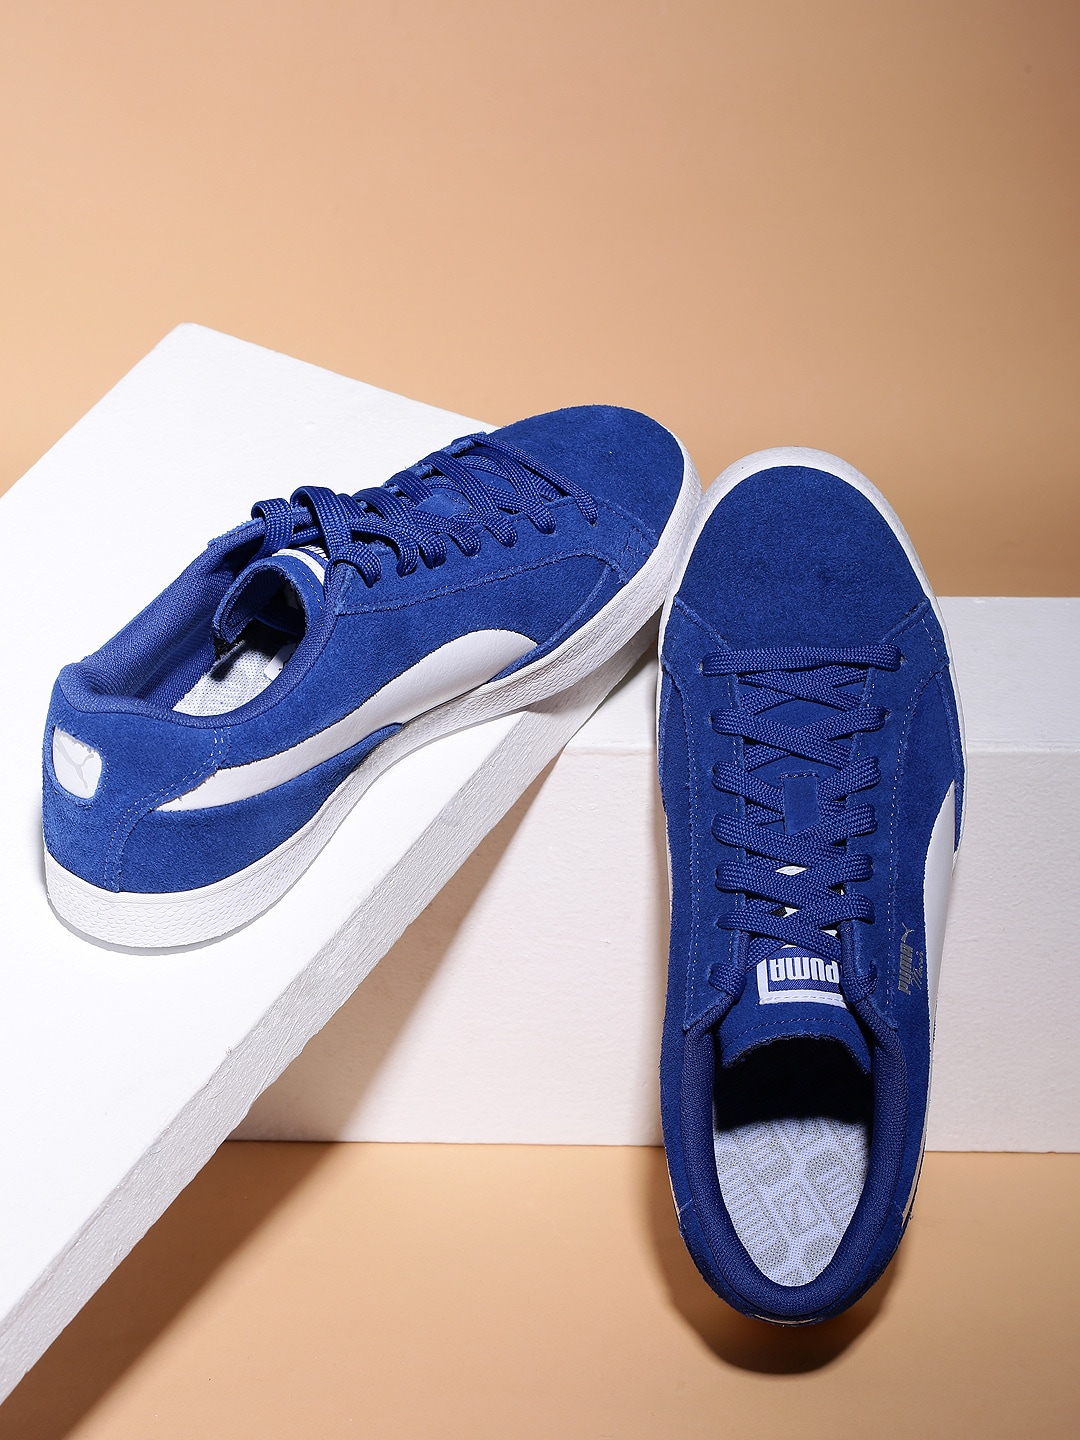 newest 5a52b 98f74 Puma Men Blue Match Vulc 2 Suede Sneakers